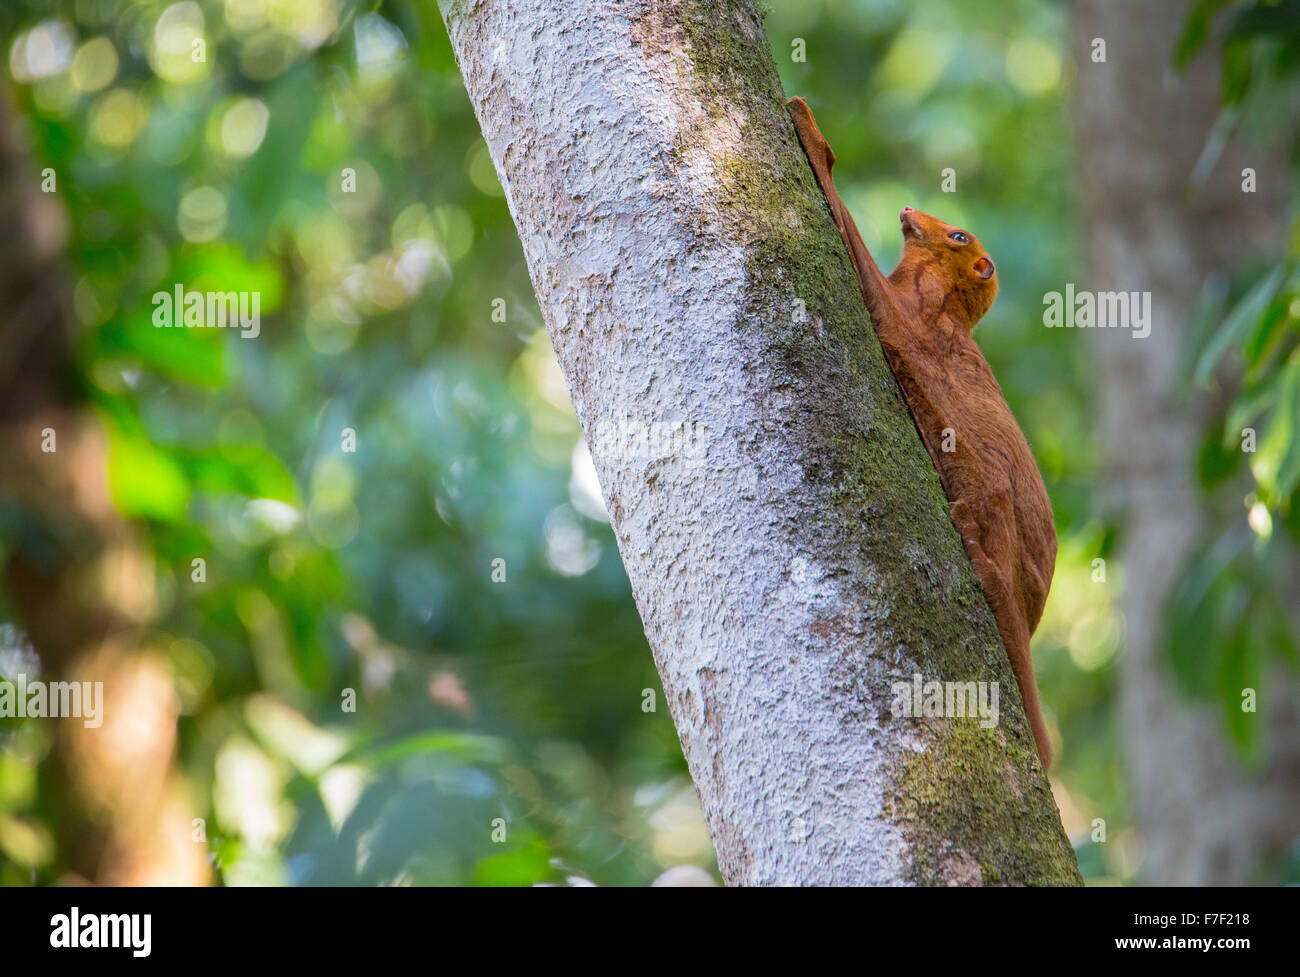 Orange color variation of the Sunda Flying Lemur (Galeopterus variegatus) also known as Colugo, roosting on a tree - Stock Image